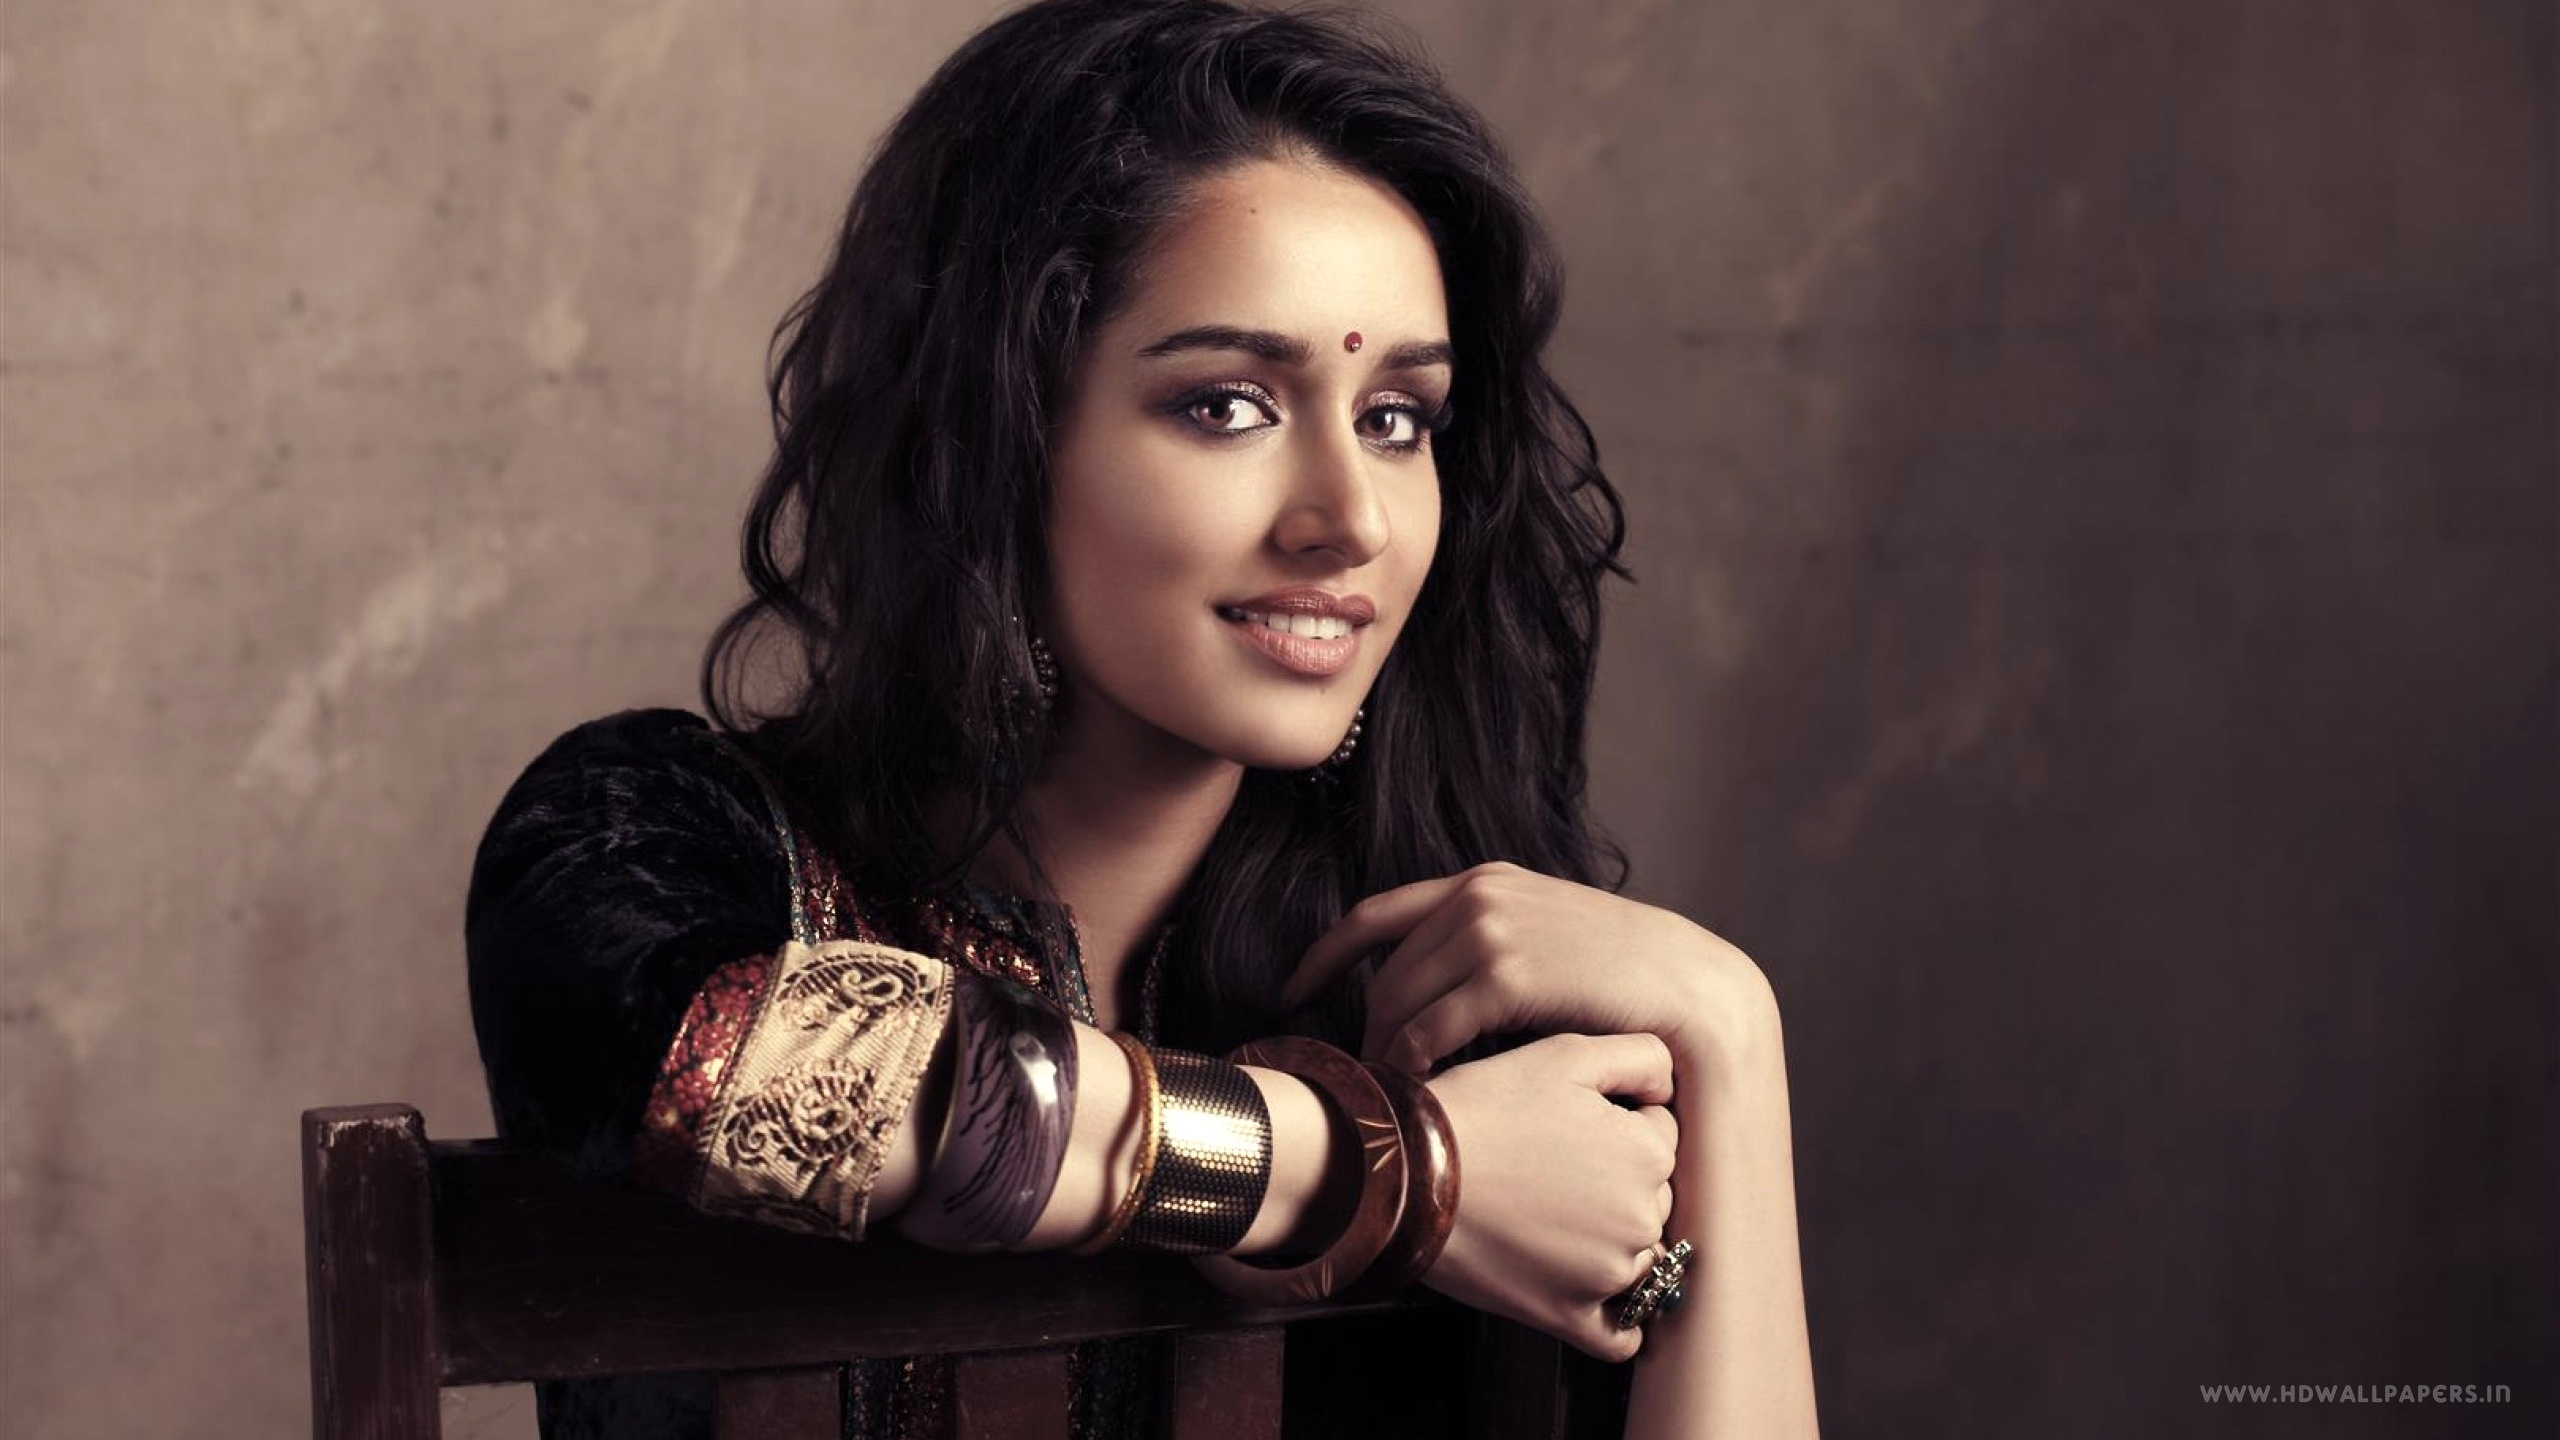 bollywood actress shraddha kapoor wallpapers in jpg format for free